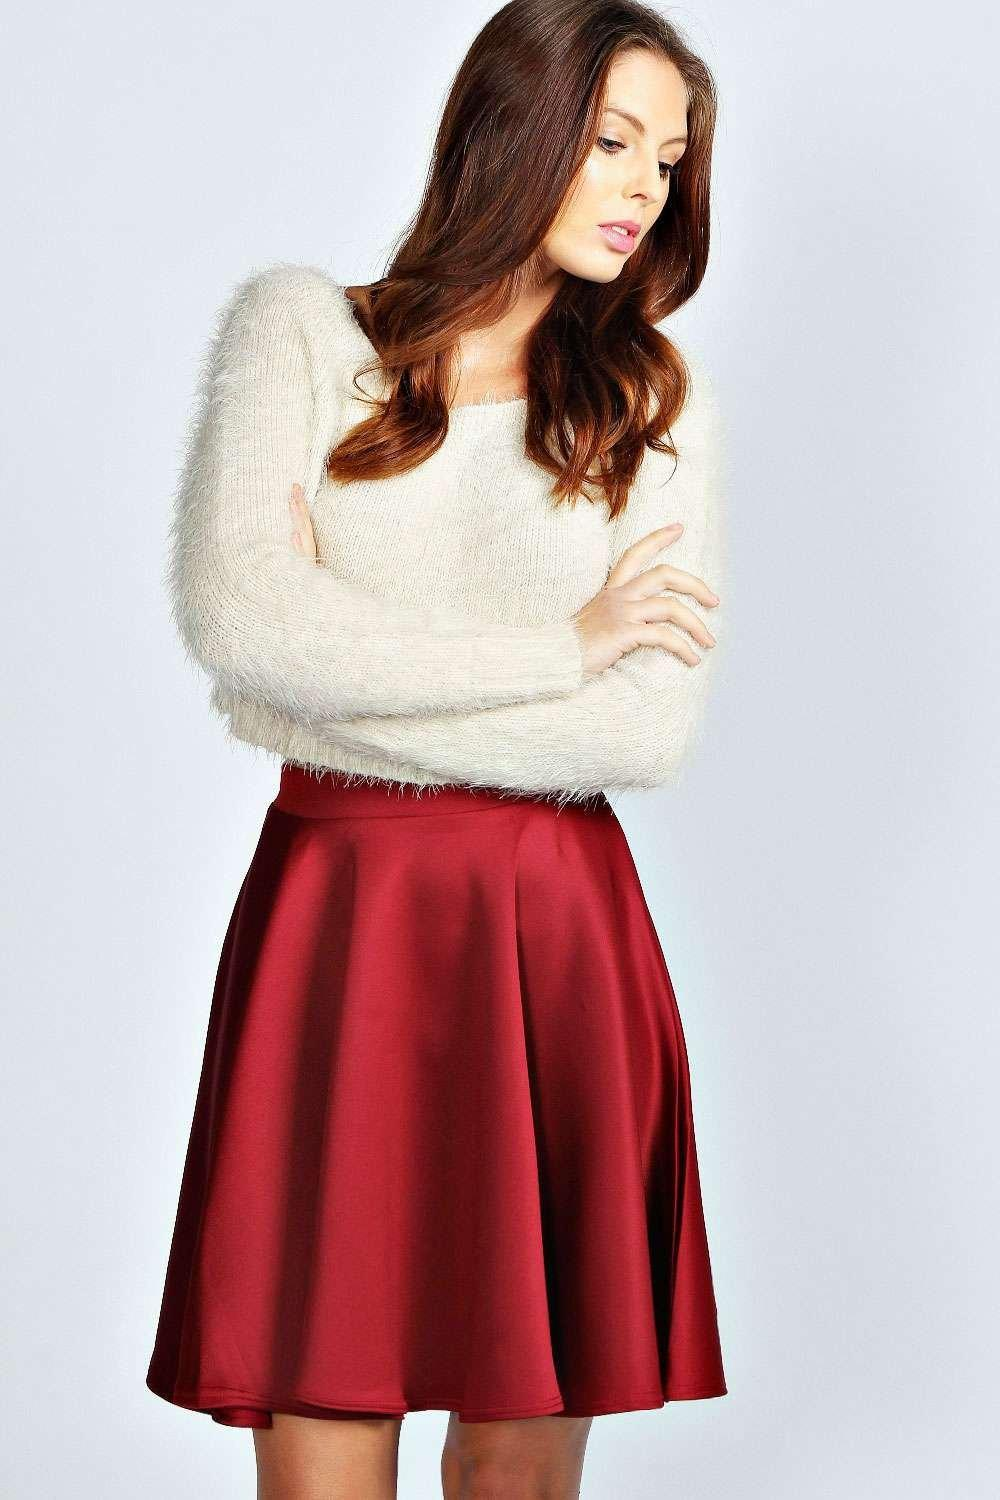 41f2e14f9 Gallery. Previously sold at: Boohoo · Women's Skater Skirts